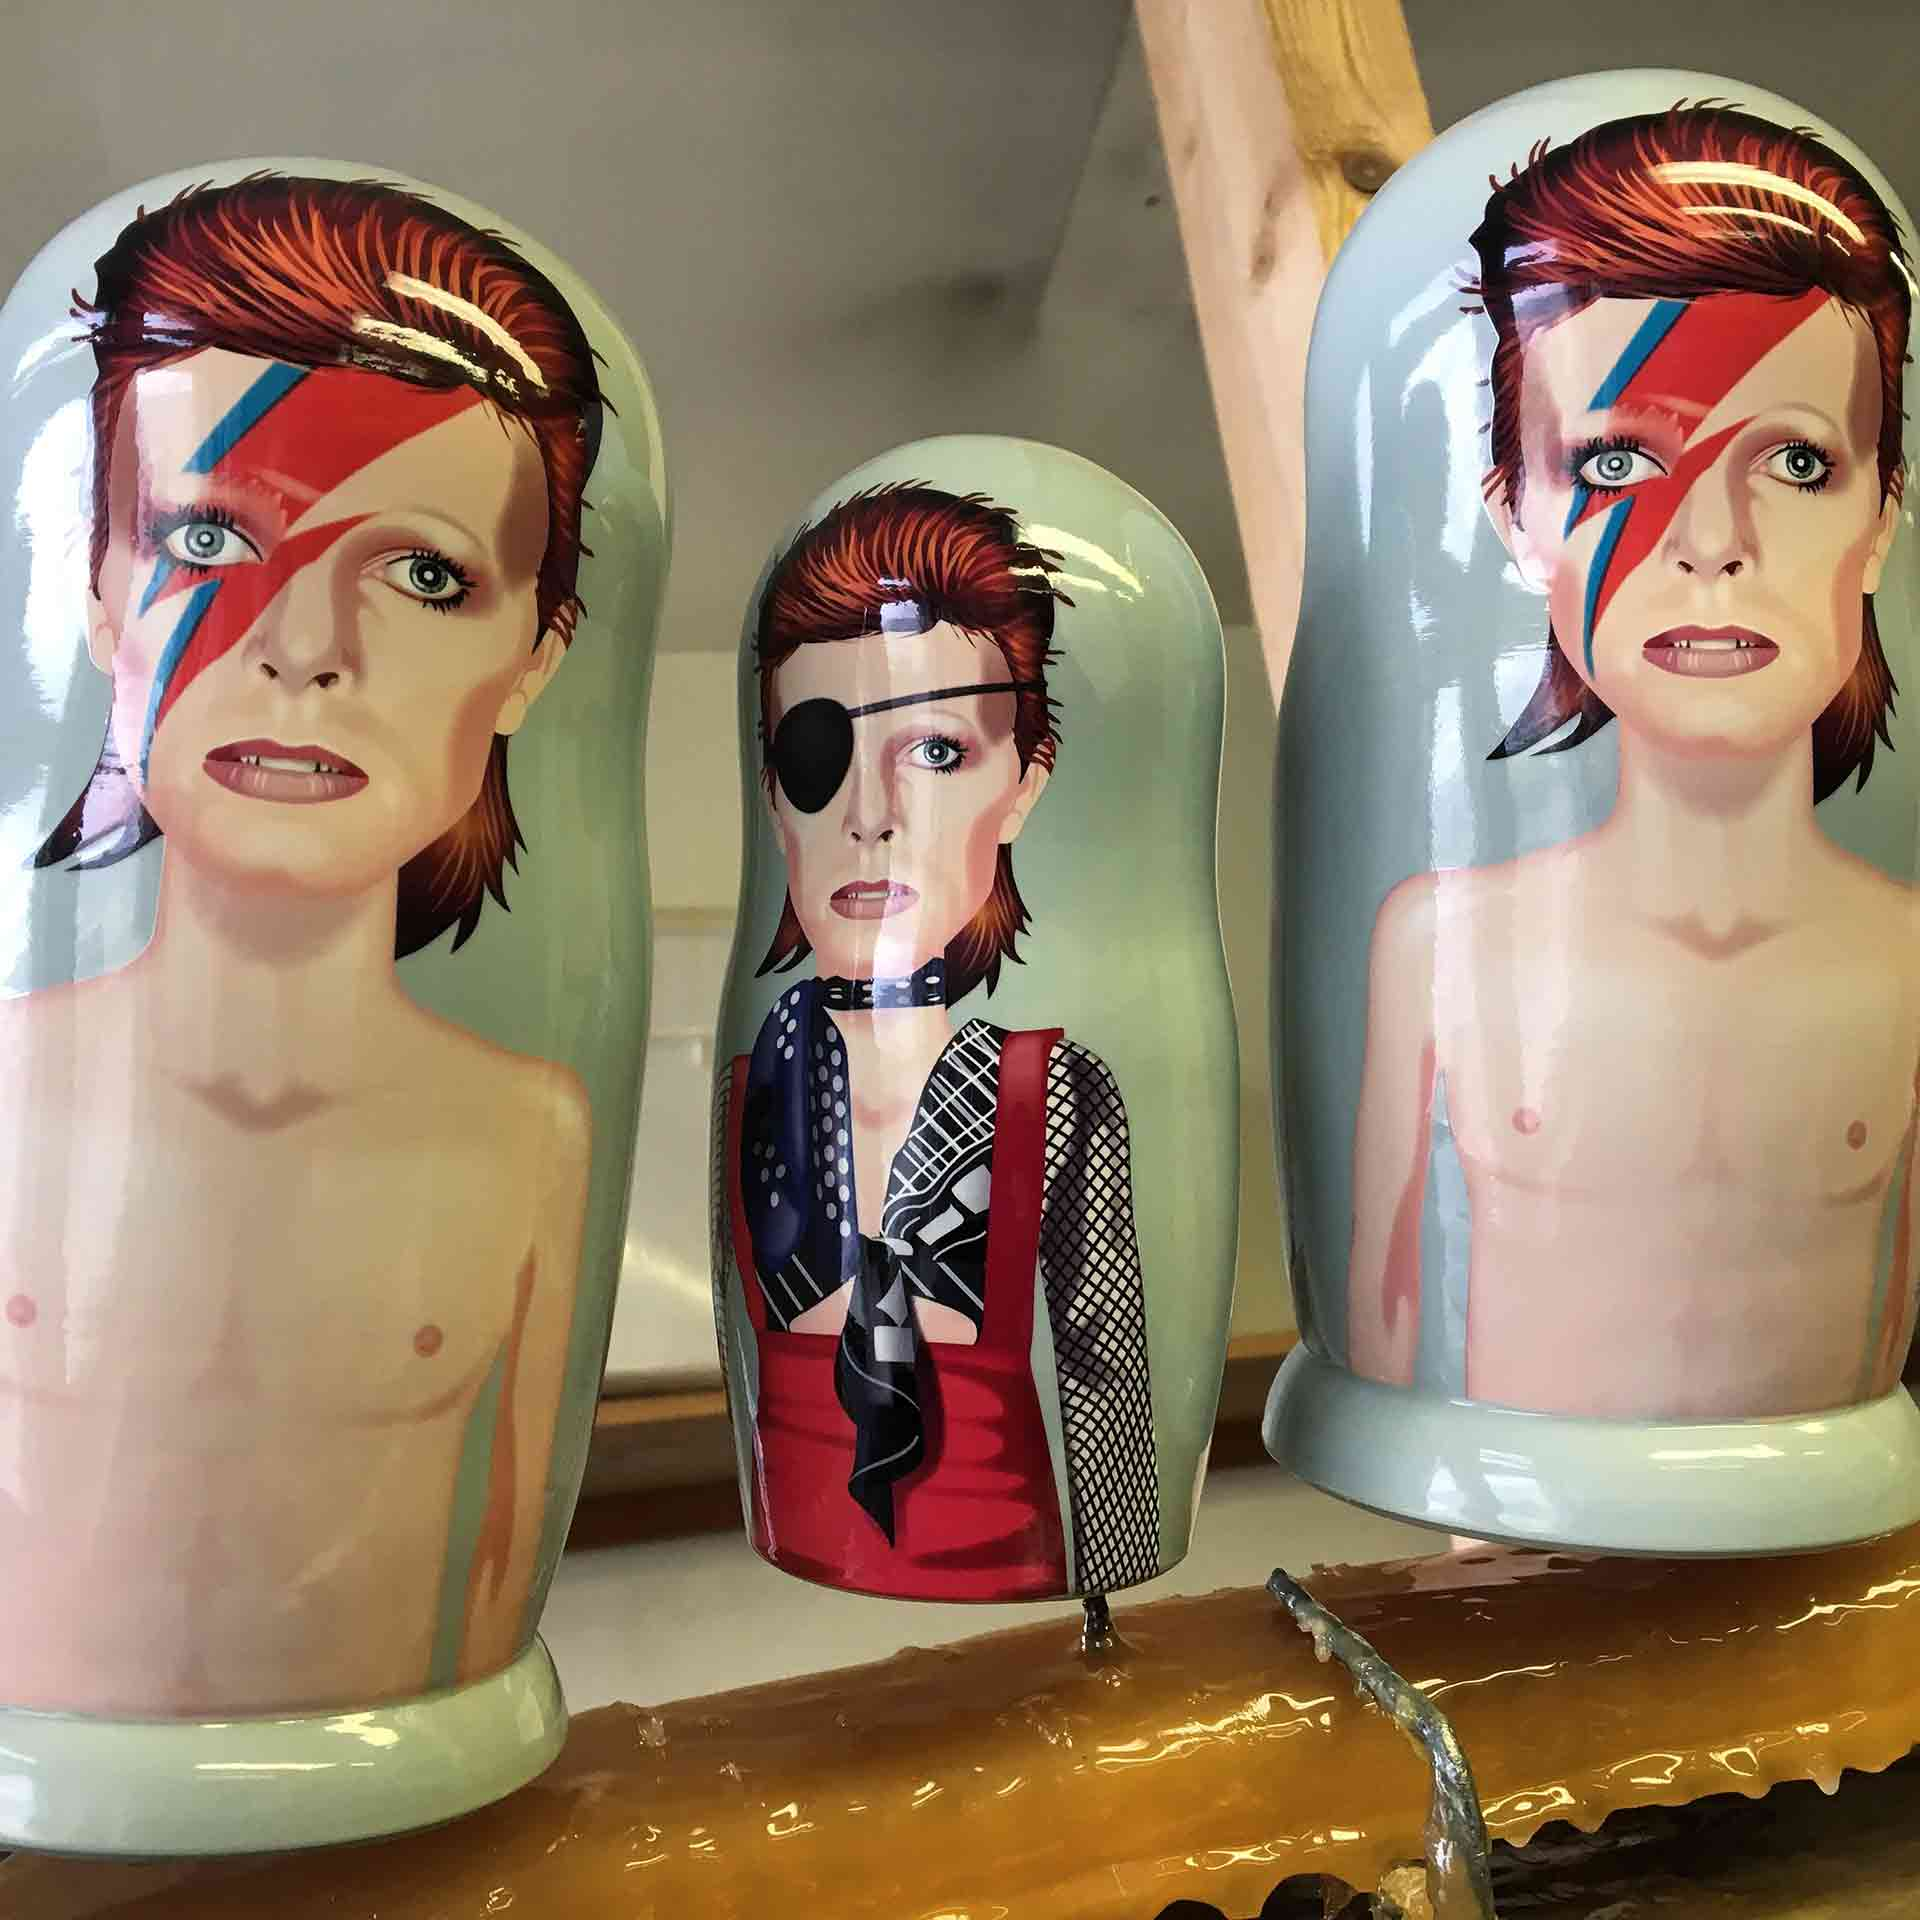 Bespoke Custom Nesting Doll – David Bowie